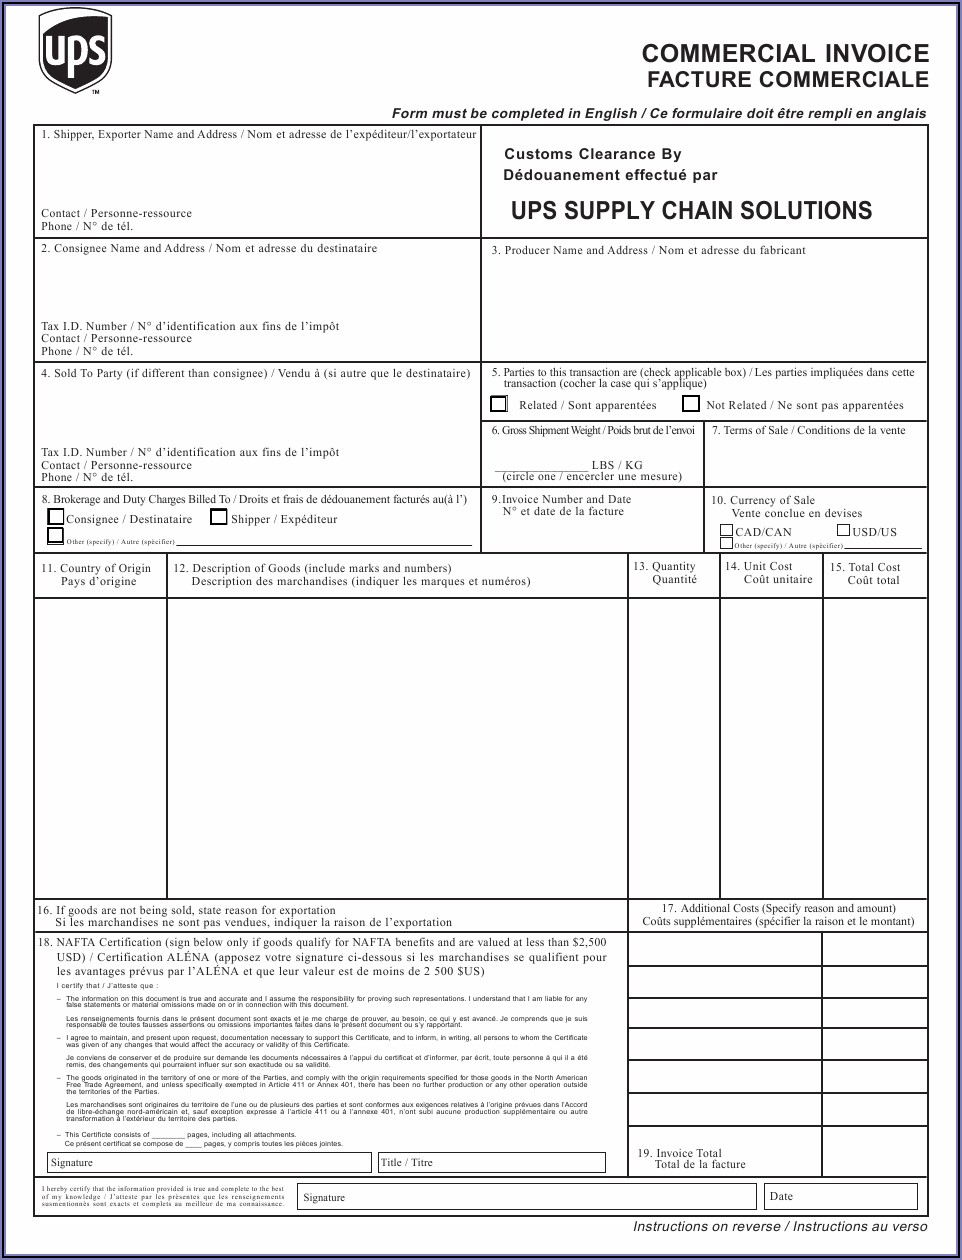 Ups Commercial Invoice Fillable Pdf